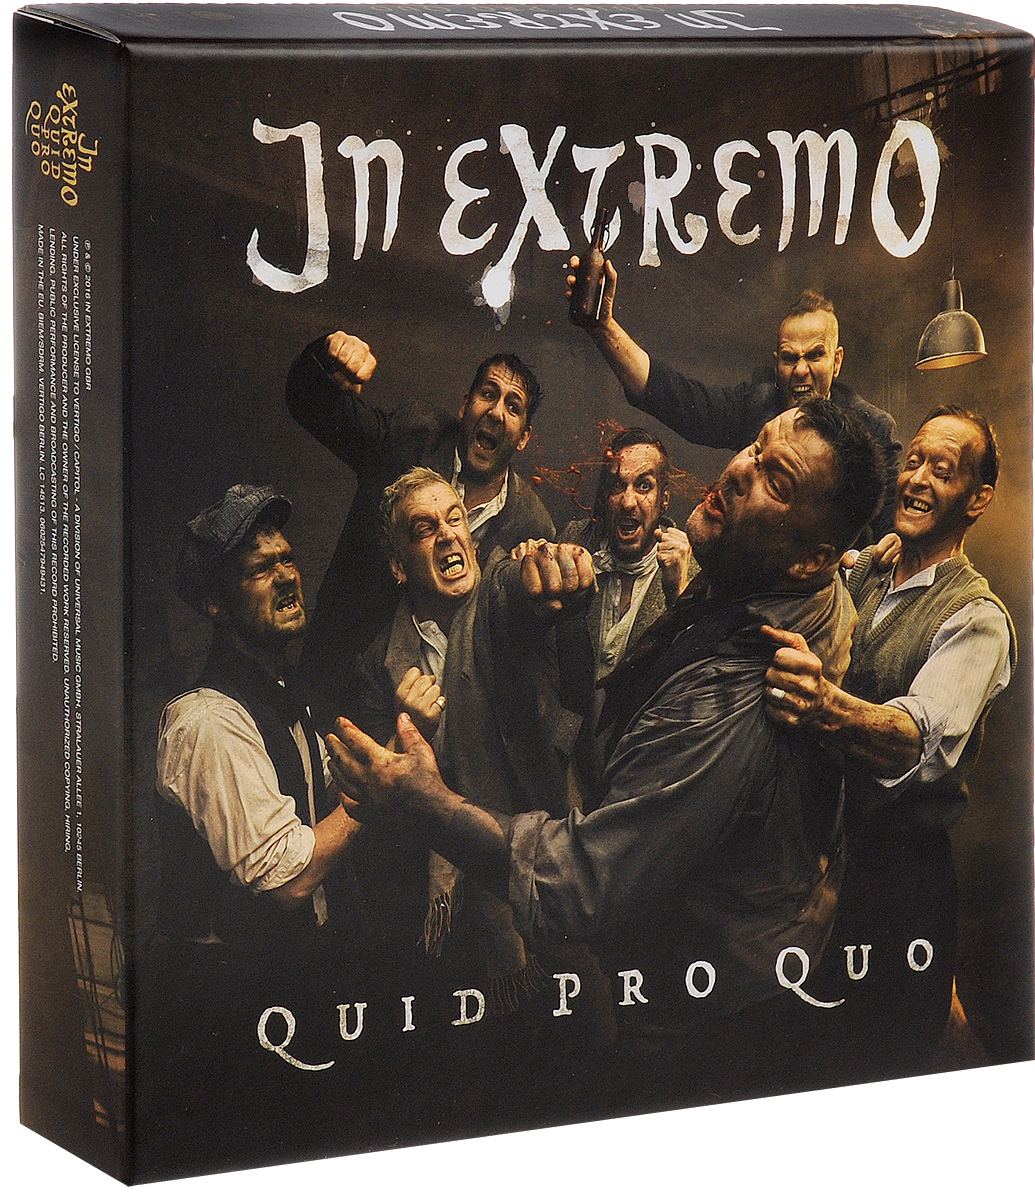 In Extremo  . Quid Pro Quo. Deluxe Edition (2 CD + LP)